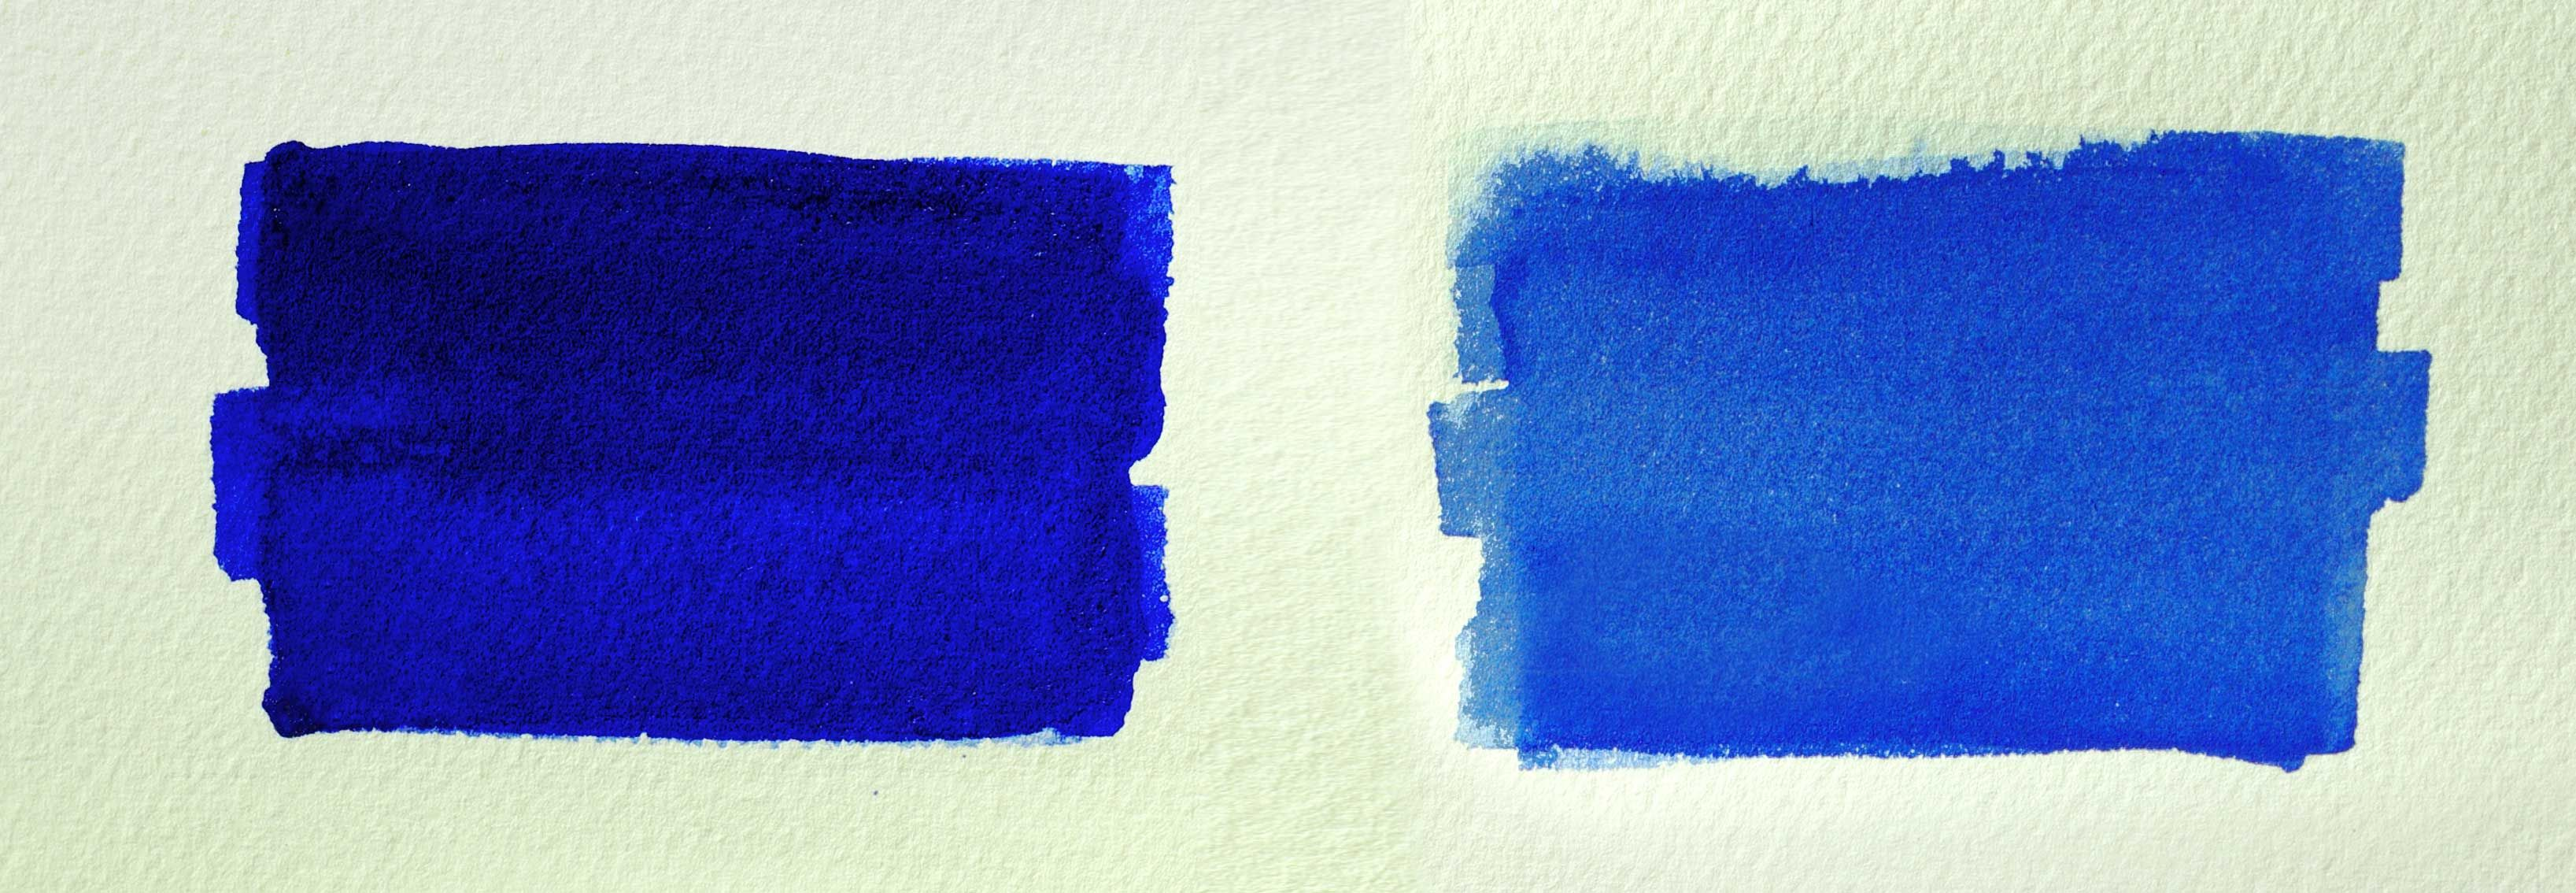 3273x1134 French Ultramarine And Cobalt Blue Watercolor